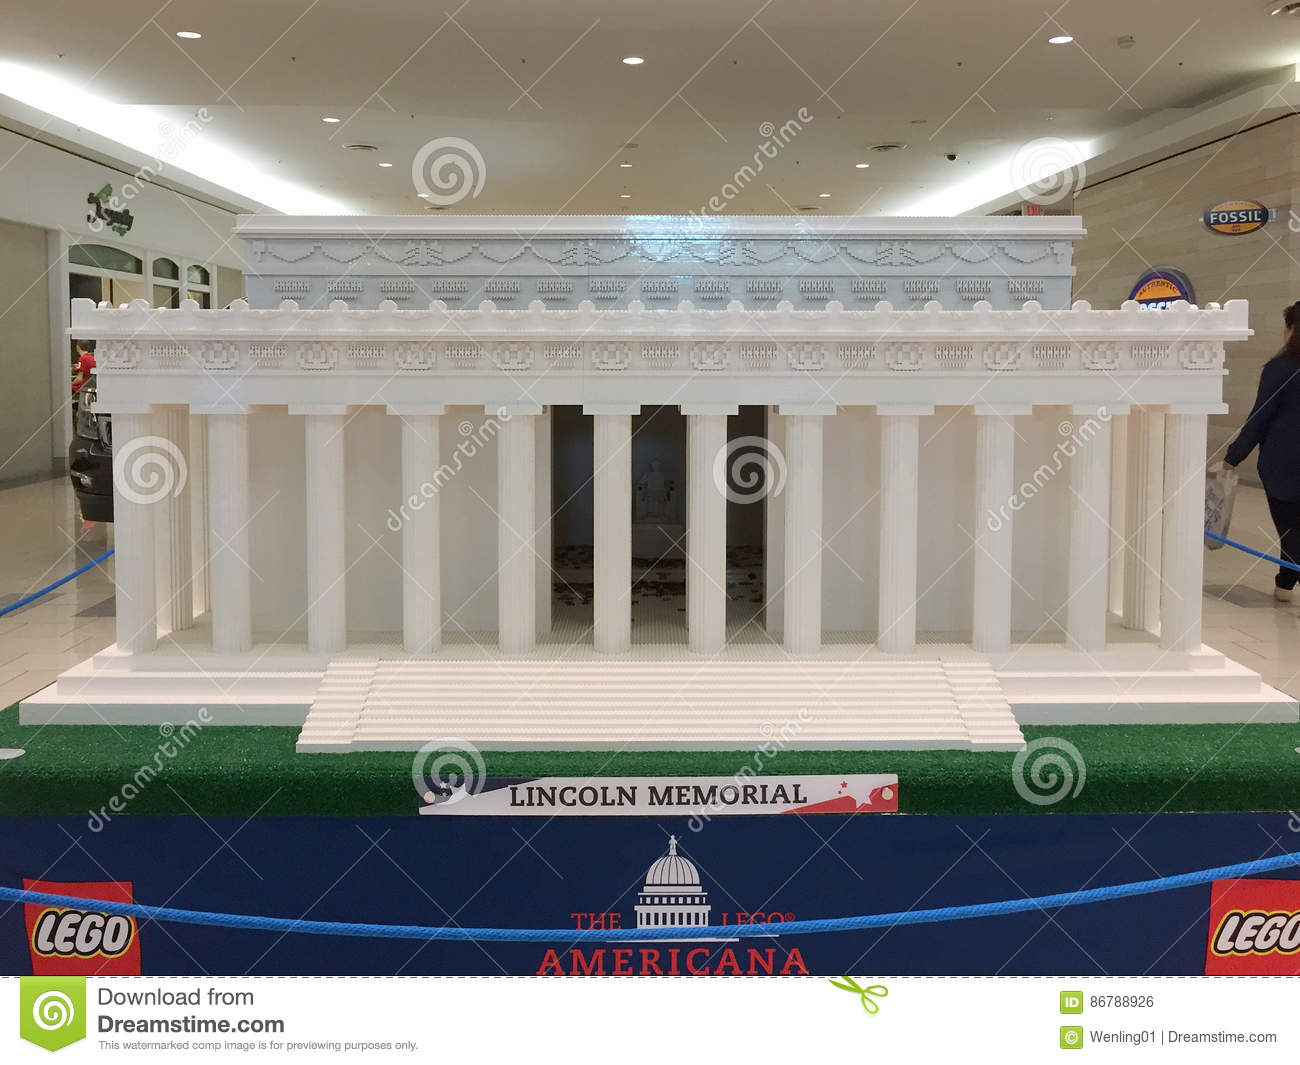 lego lincoln memorial instructions